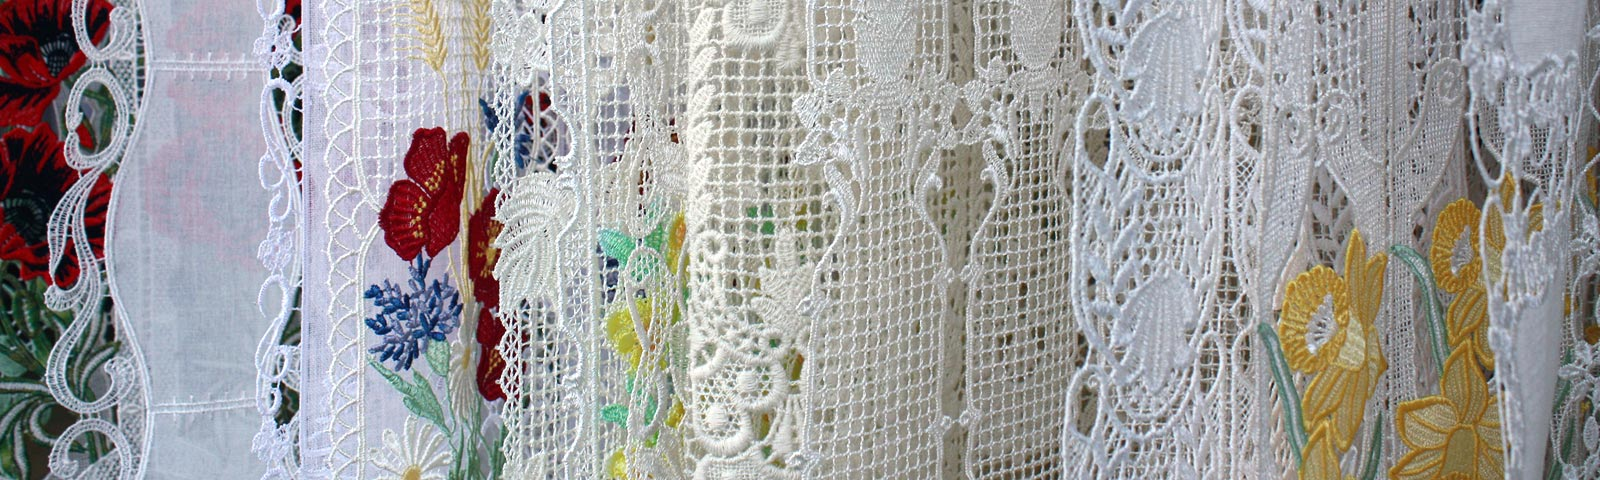 macrame lace cafe curtains. Black Bedroom Furniture Sets. Home Design Ideas